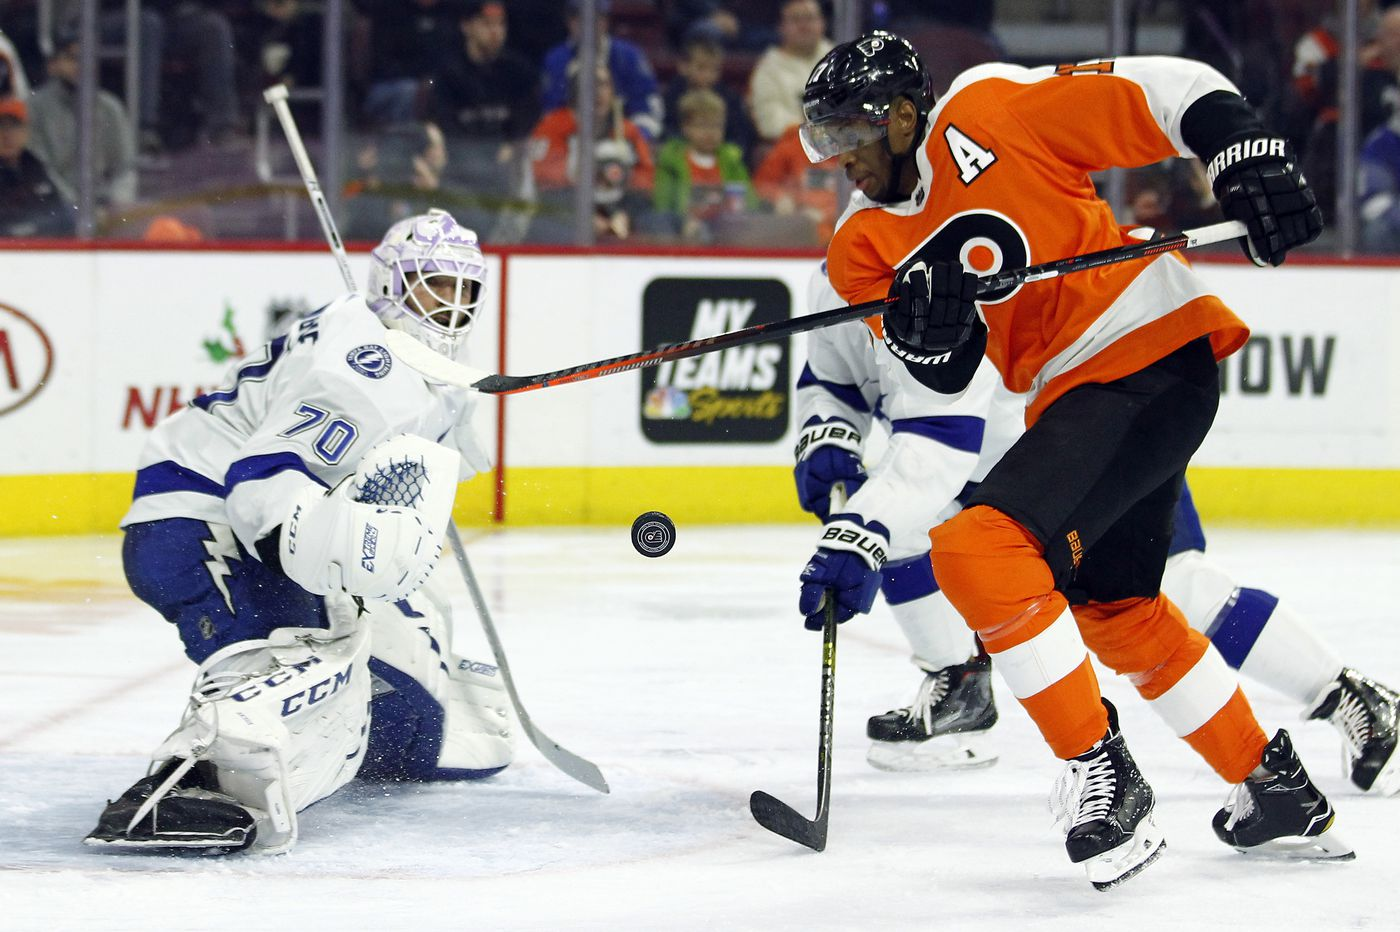 Flyers taking momentum on road trip, which starts against Stanley Cup favorite Tampa Bay Lightning